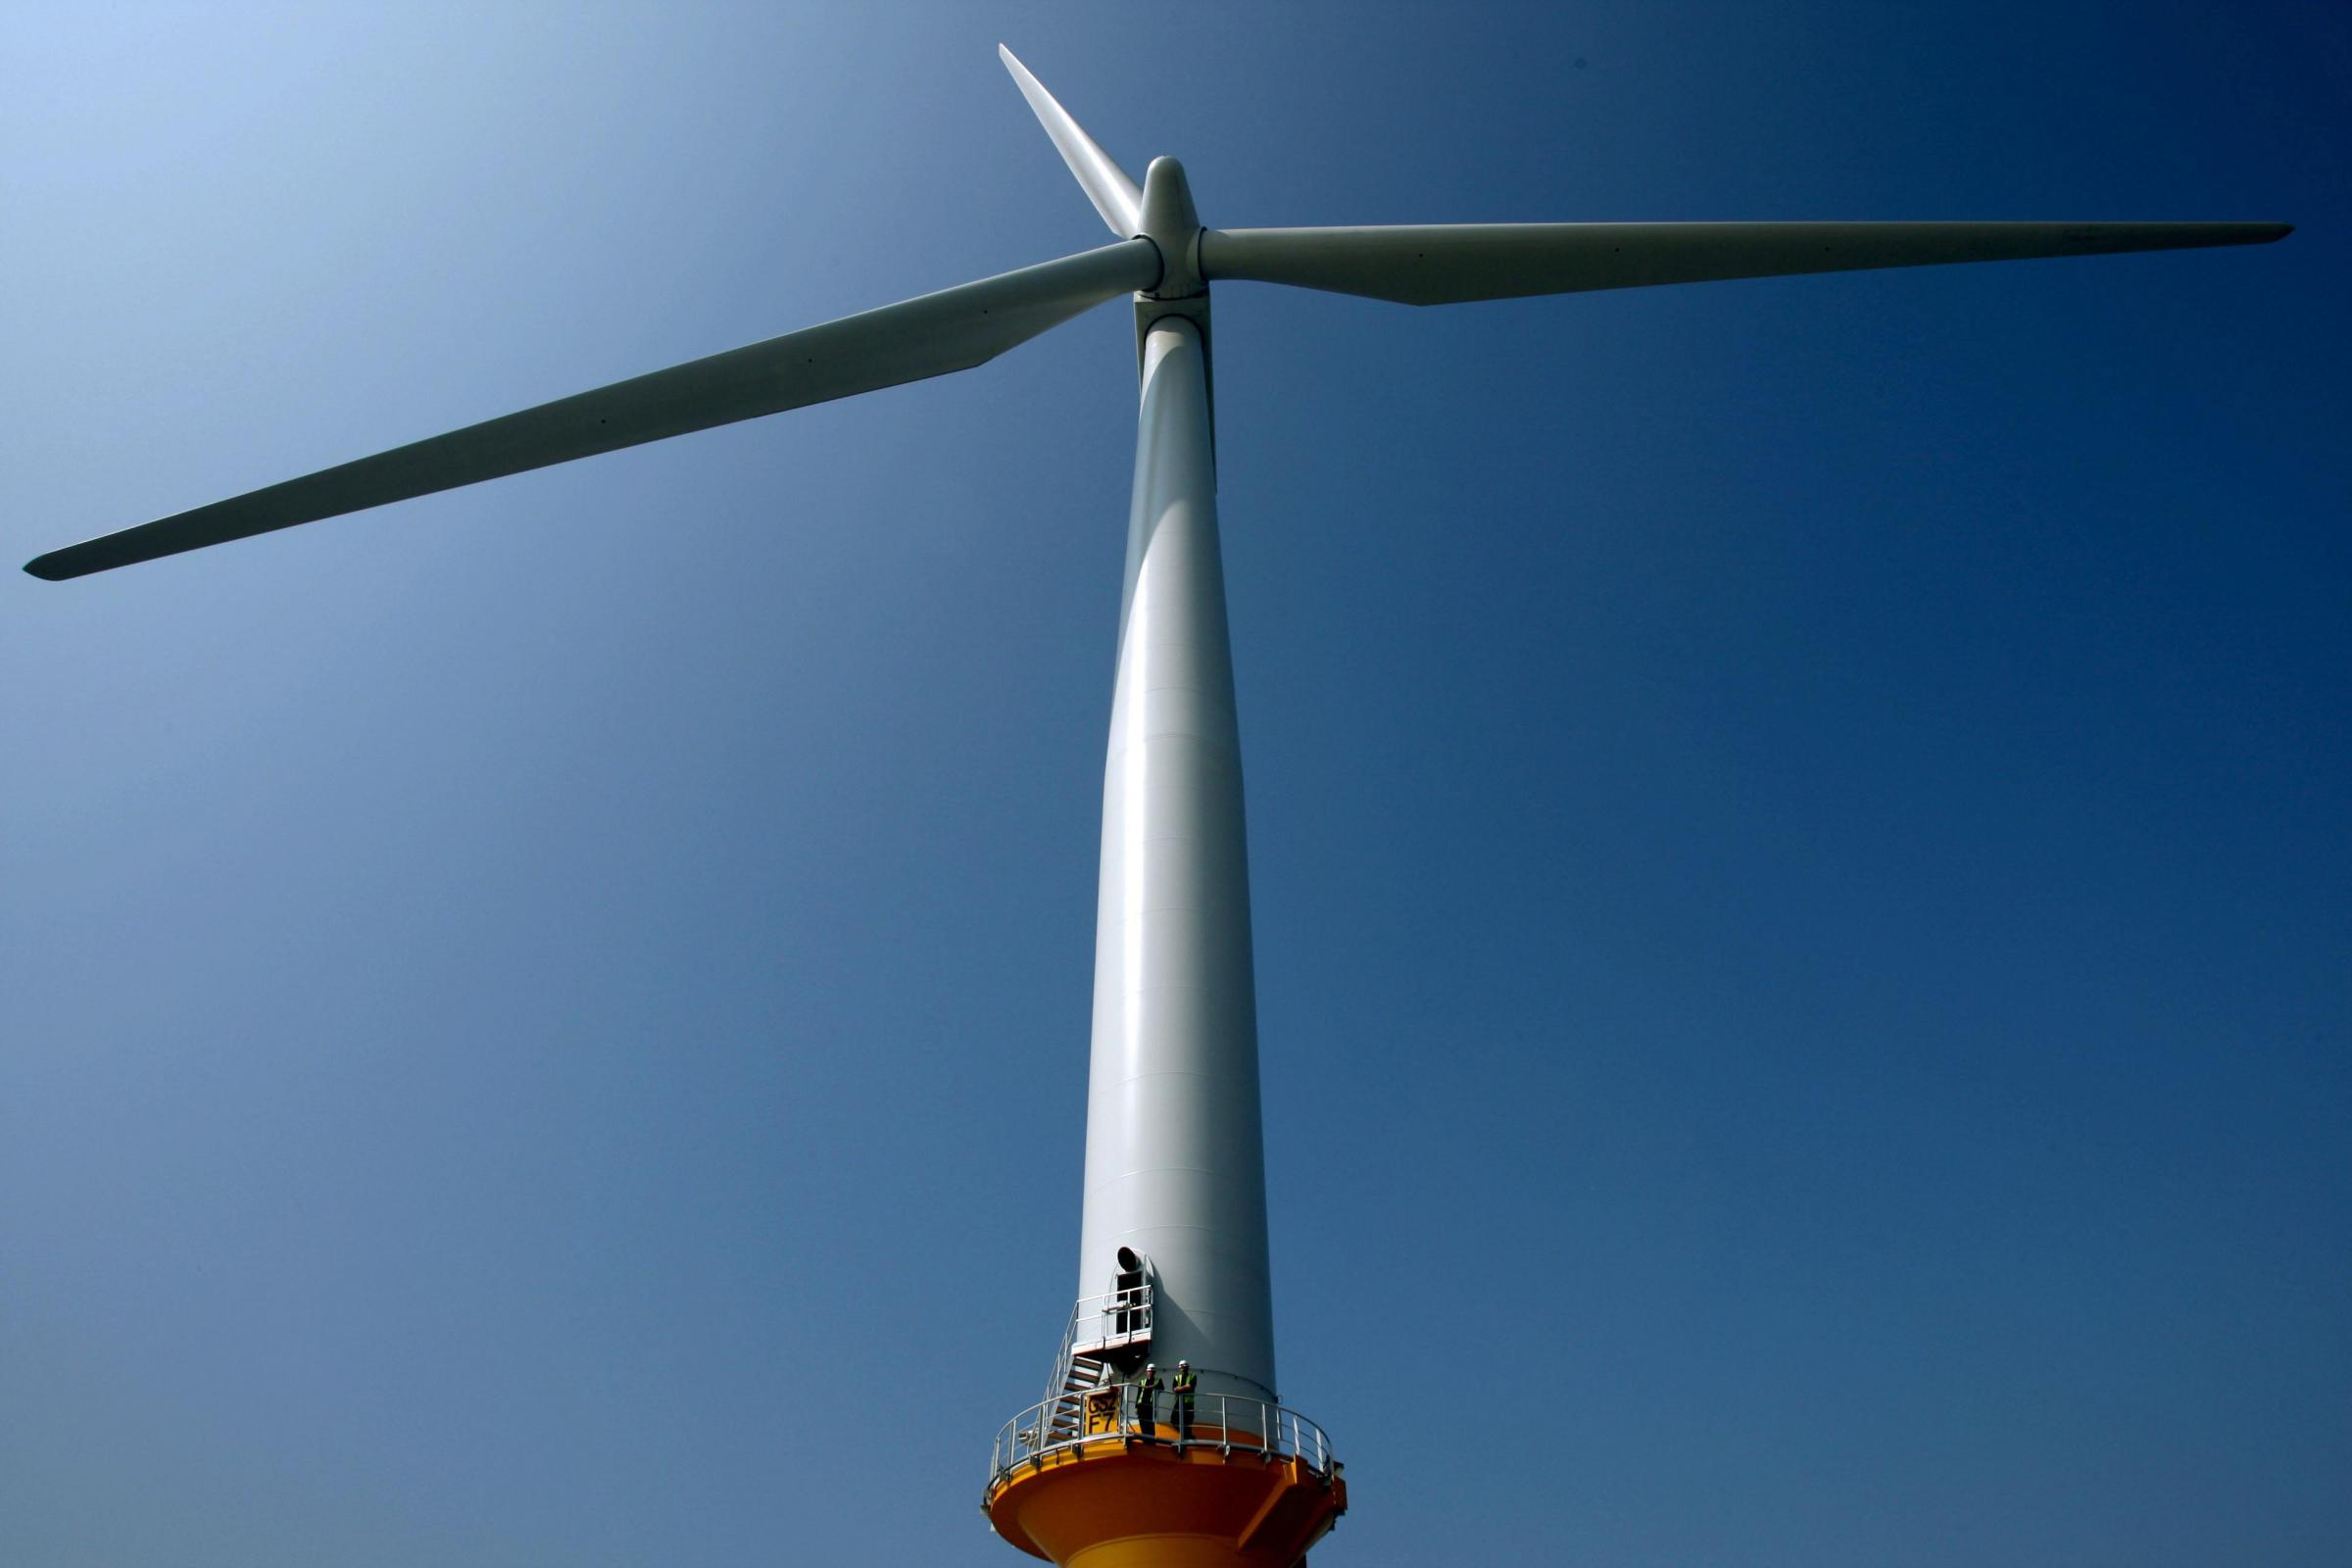 Noise fears over proposed wind turbine off Dorset coast